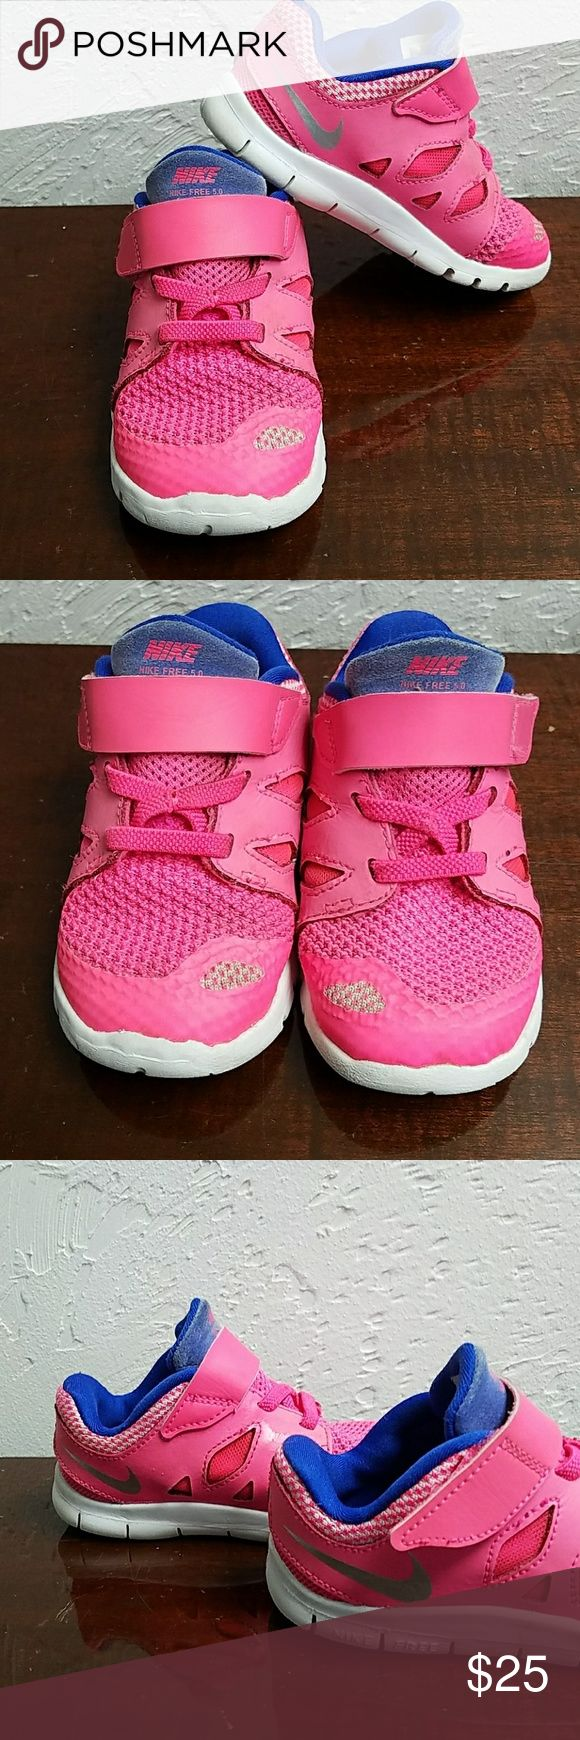 Nike Free 5.0 pink toddler shoes size 7 Great used condition! Nike Shoes Sneakers